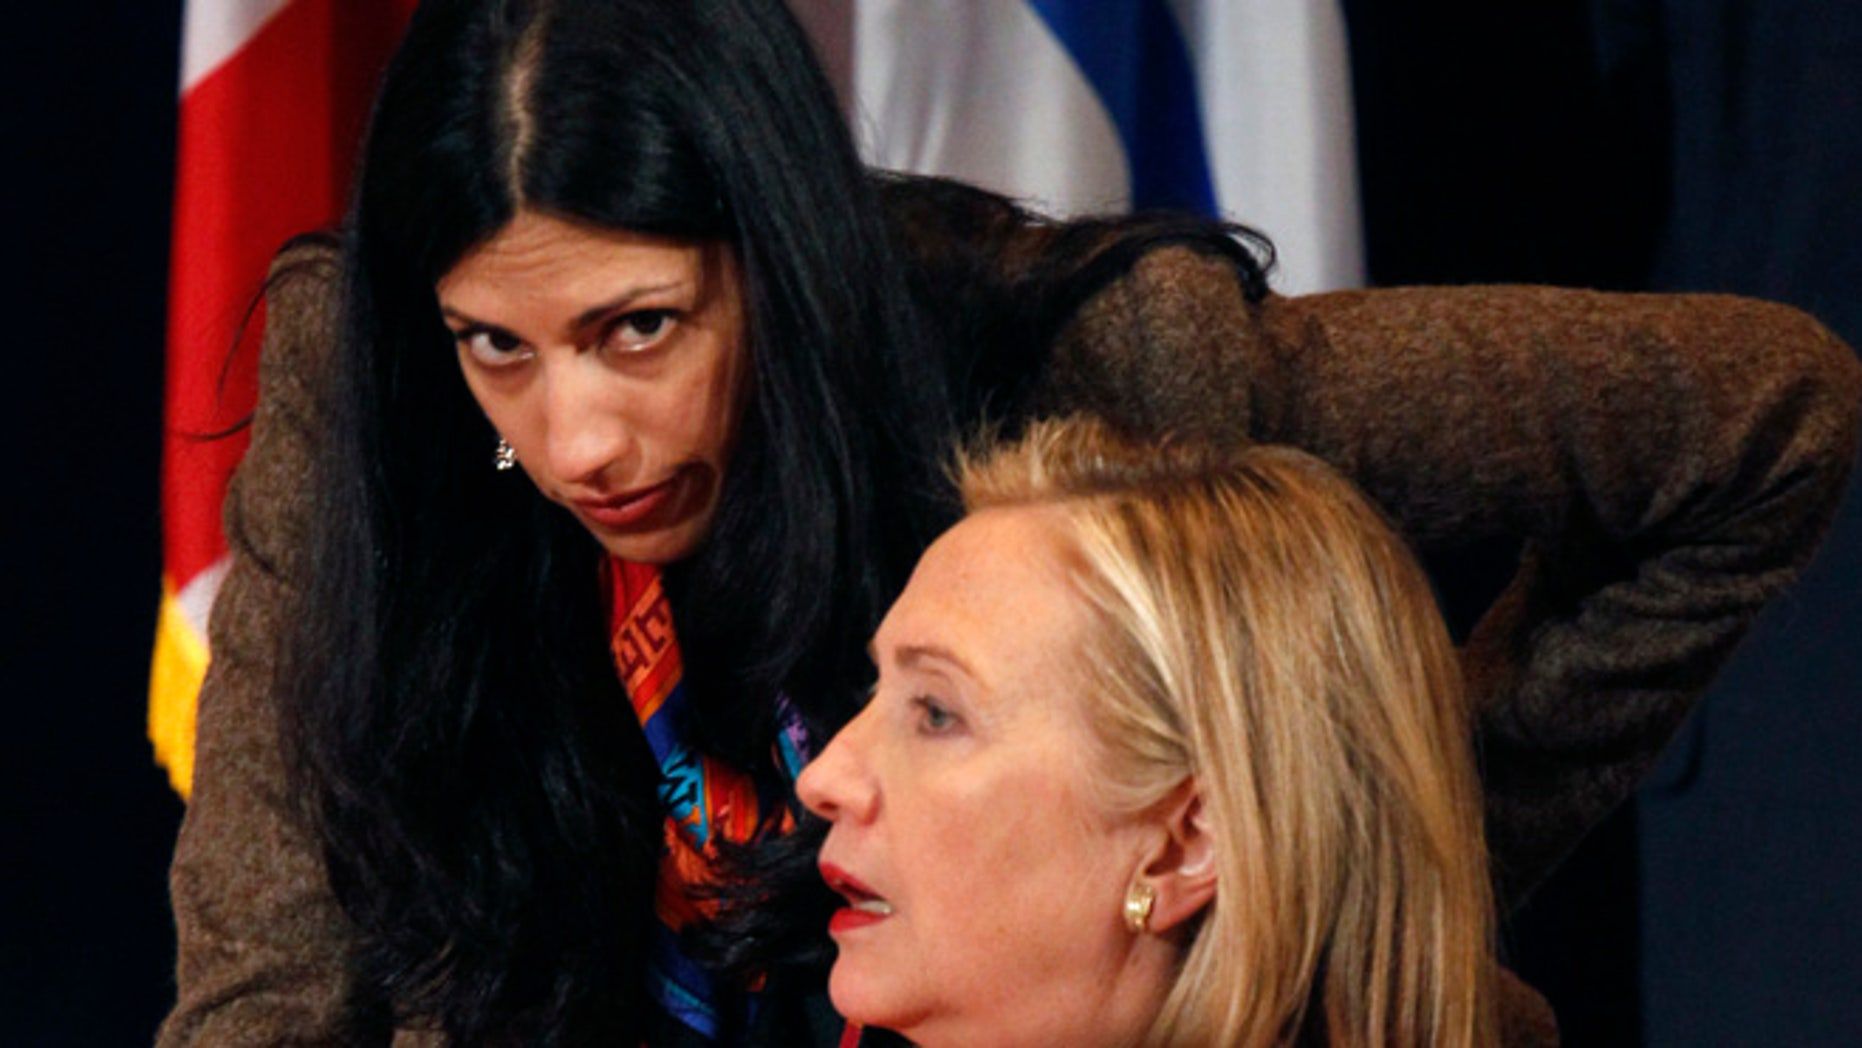 Sept. 20, 2011: U.S. Secretary of State Hillary Clinton talks with her deputy chief of staff, Huma Abedin, during the Open Government Partnership event in New York. (Reuters)